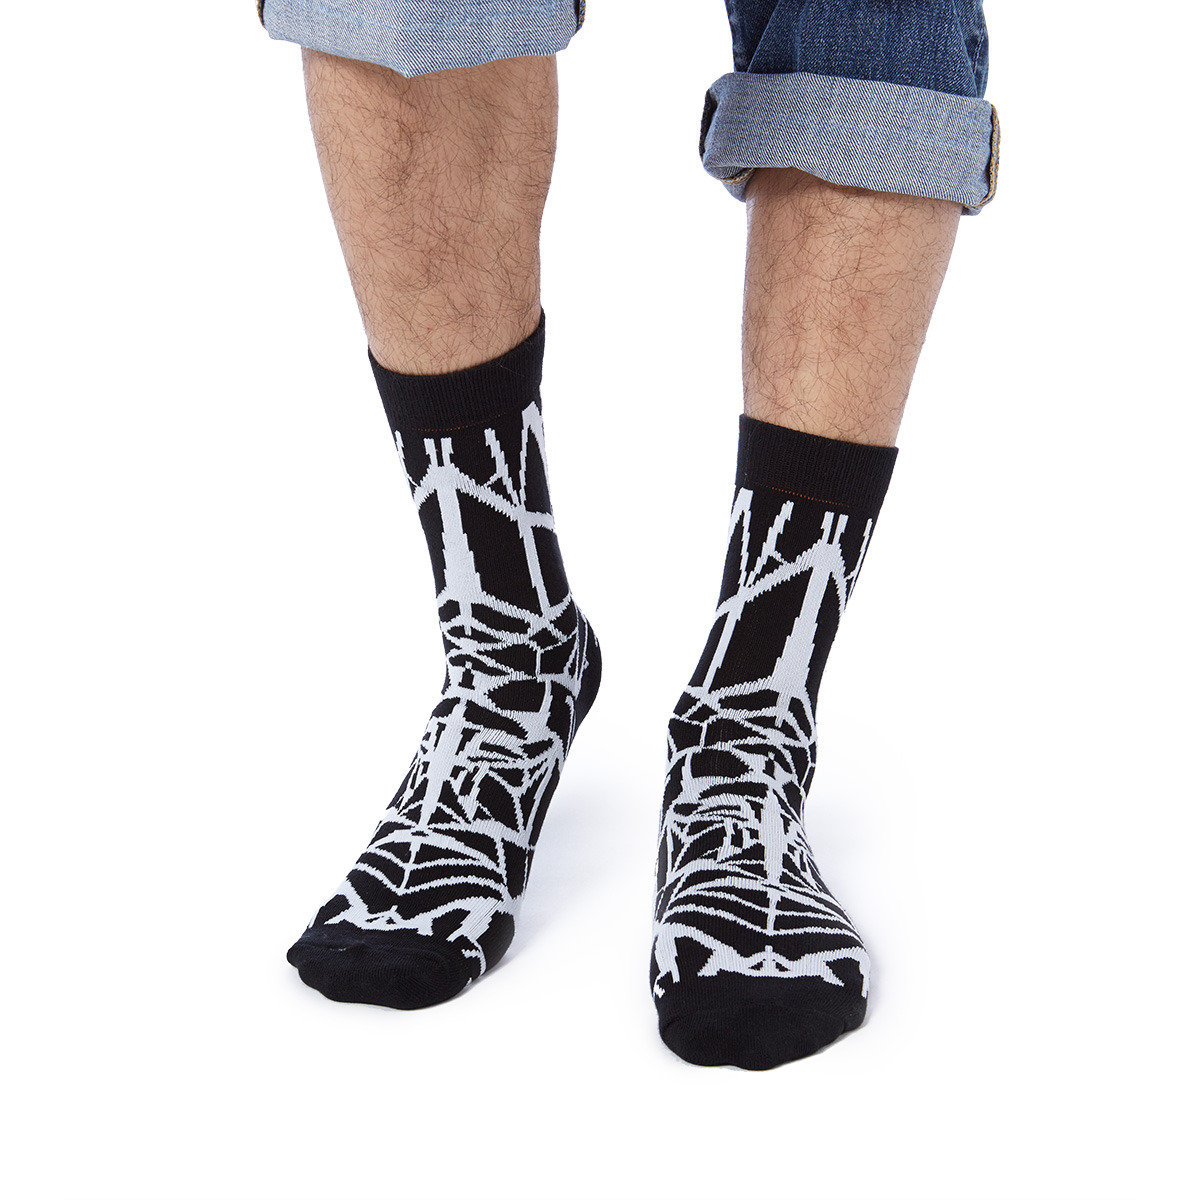 Honey x 112 mountainyam shattered glass crew socks